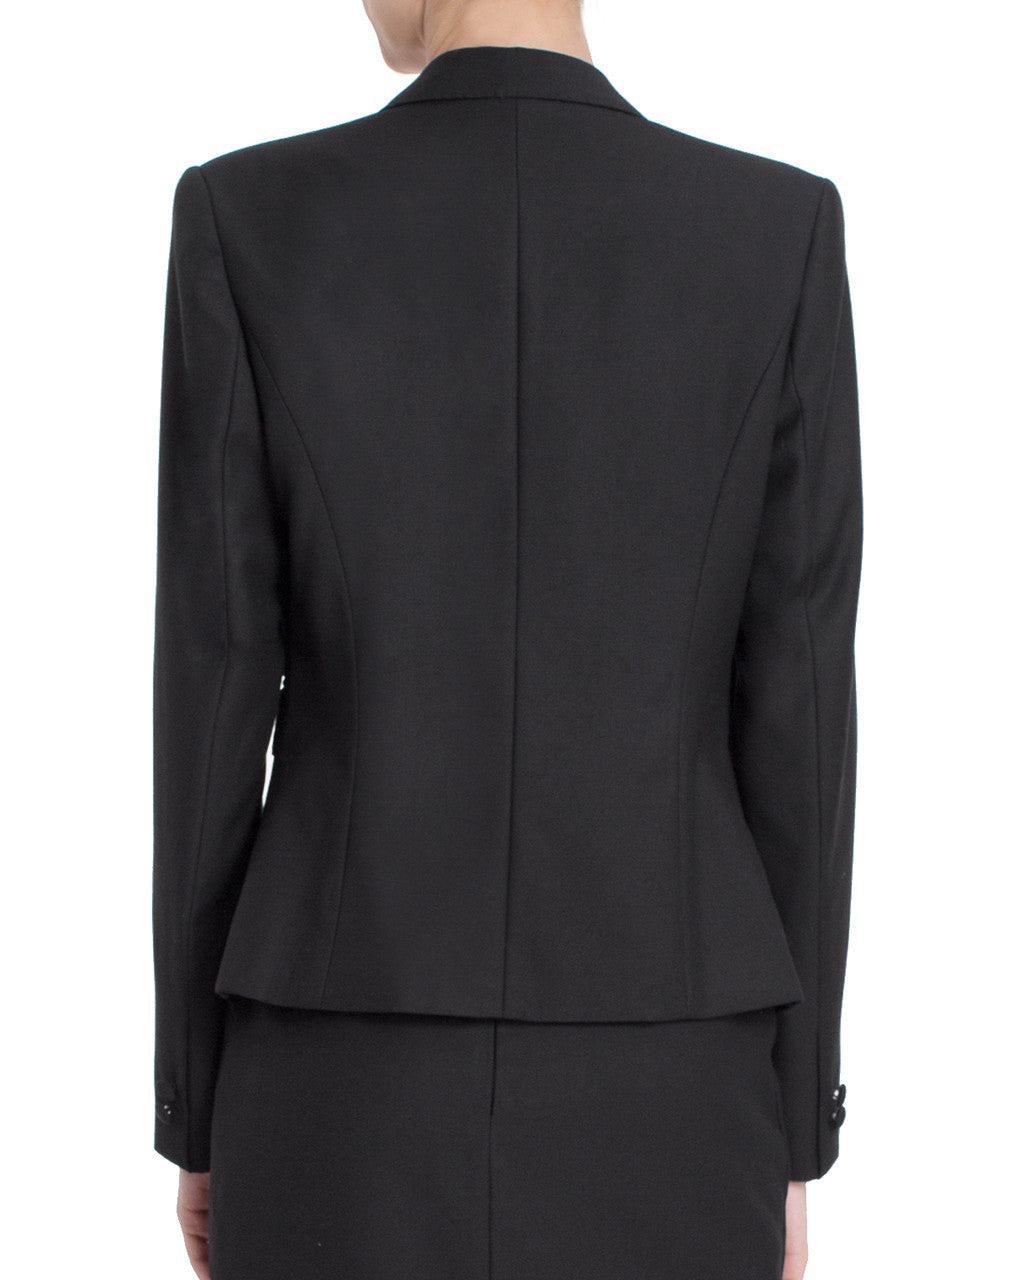 Detailed Three Button Blazer - Black